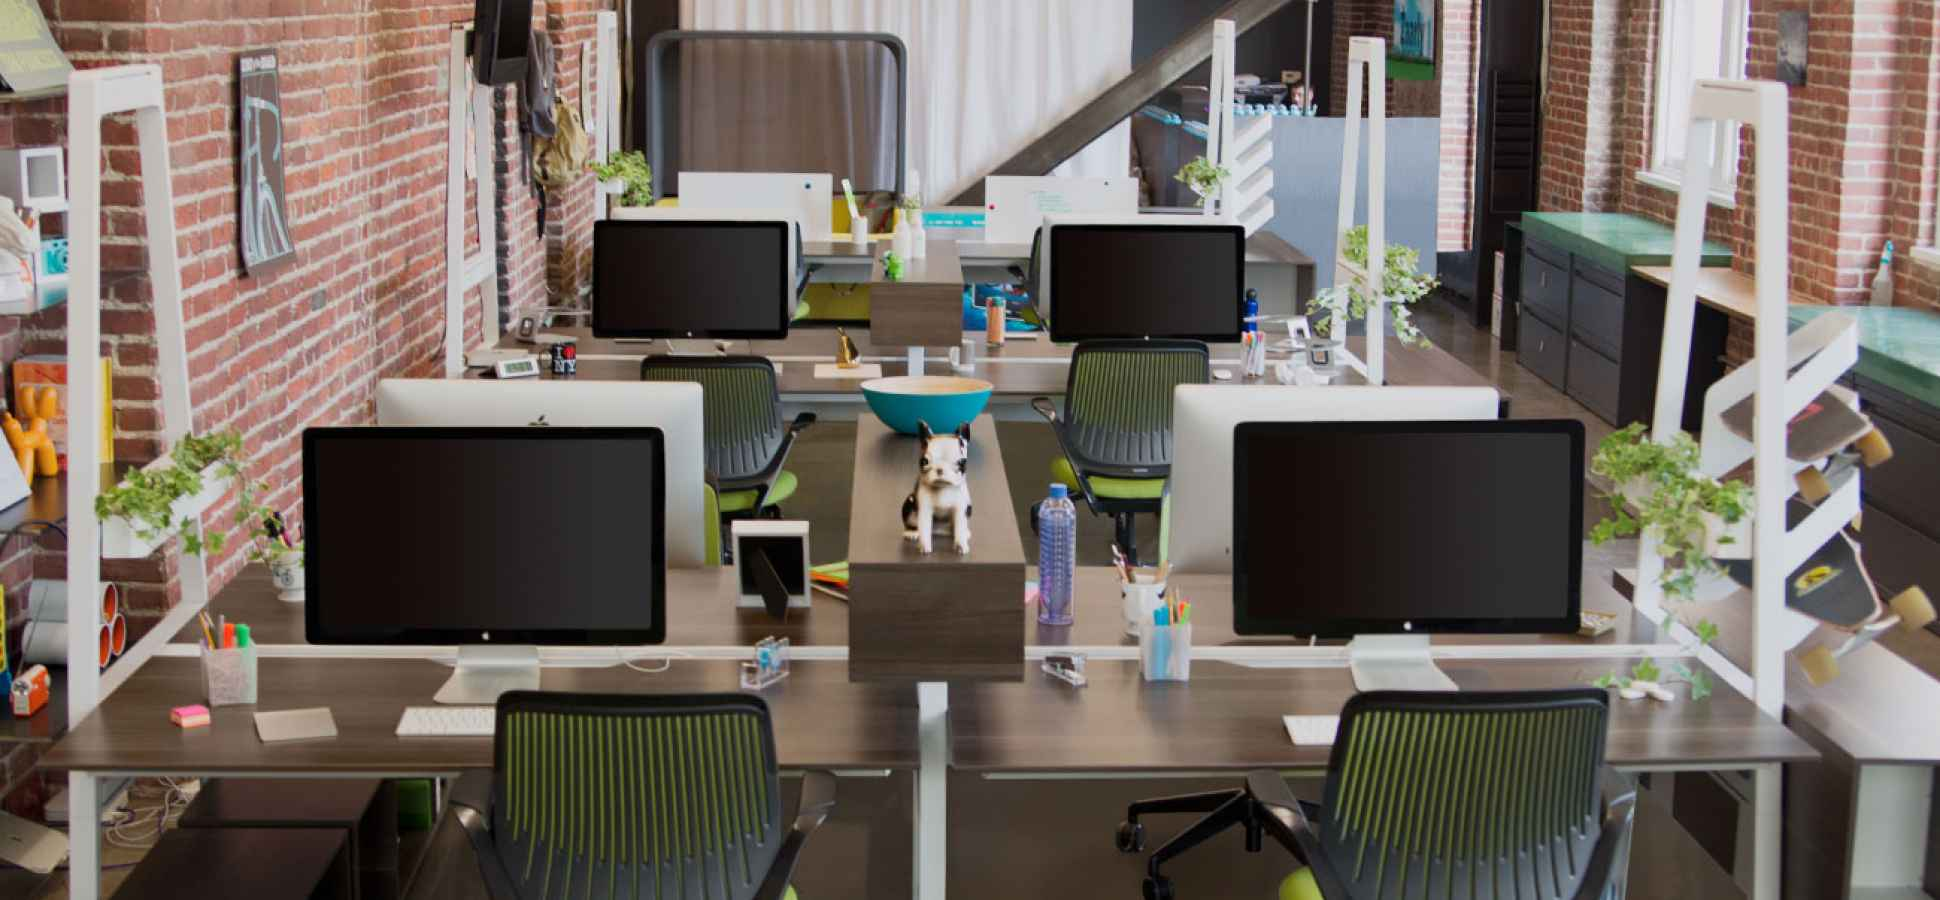 Prime 10 Office Design Tips To Foster Creativity Inc Com Largest Home Design Picture Inspirations Pitcheantrous